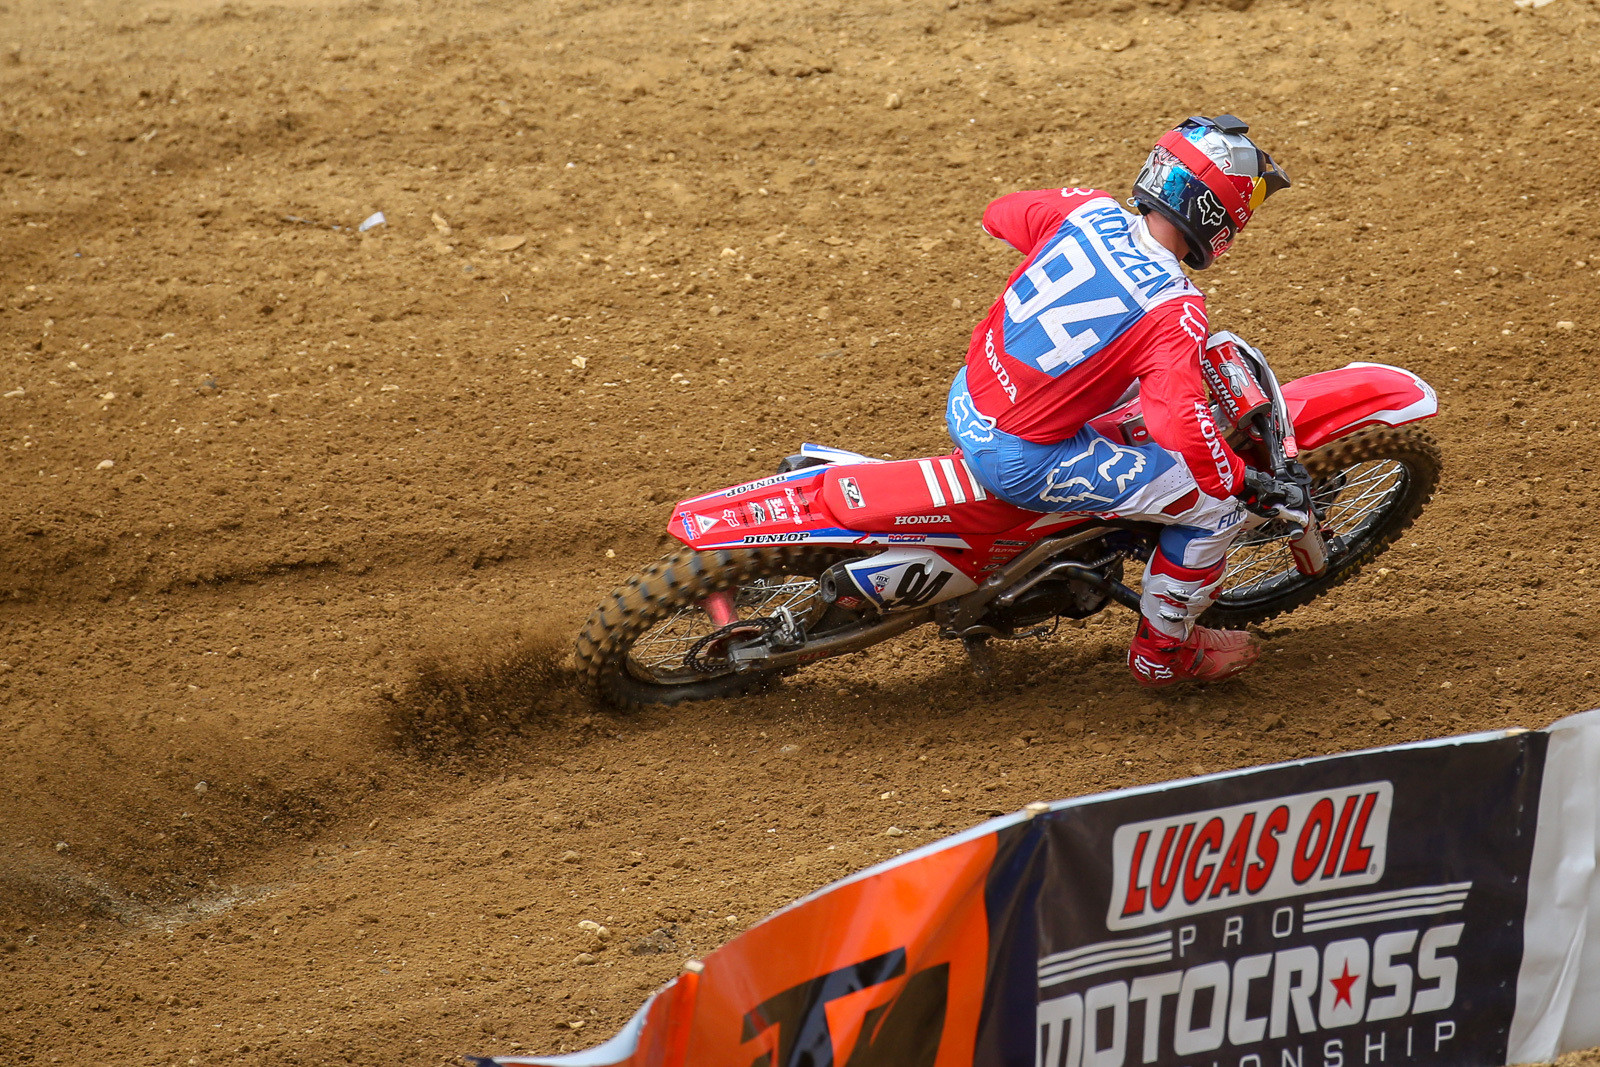 Ken Roczen quickly took over the top spot and sprinted away...despite reportedly not feeling particularly spicy.